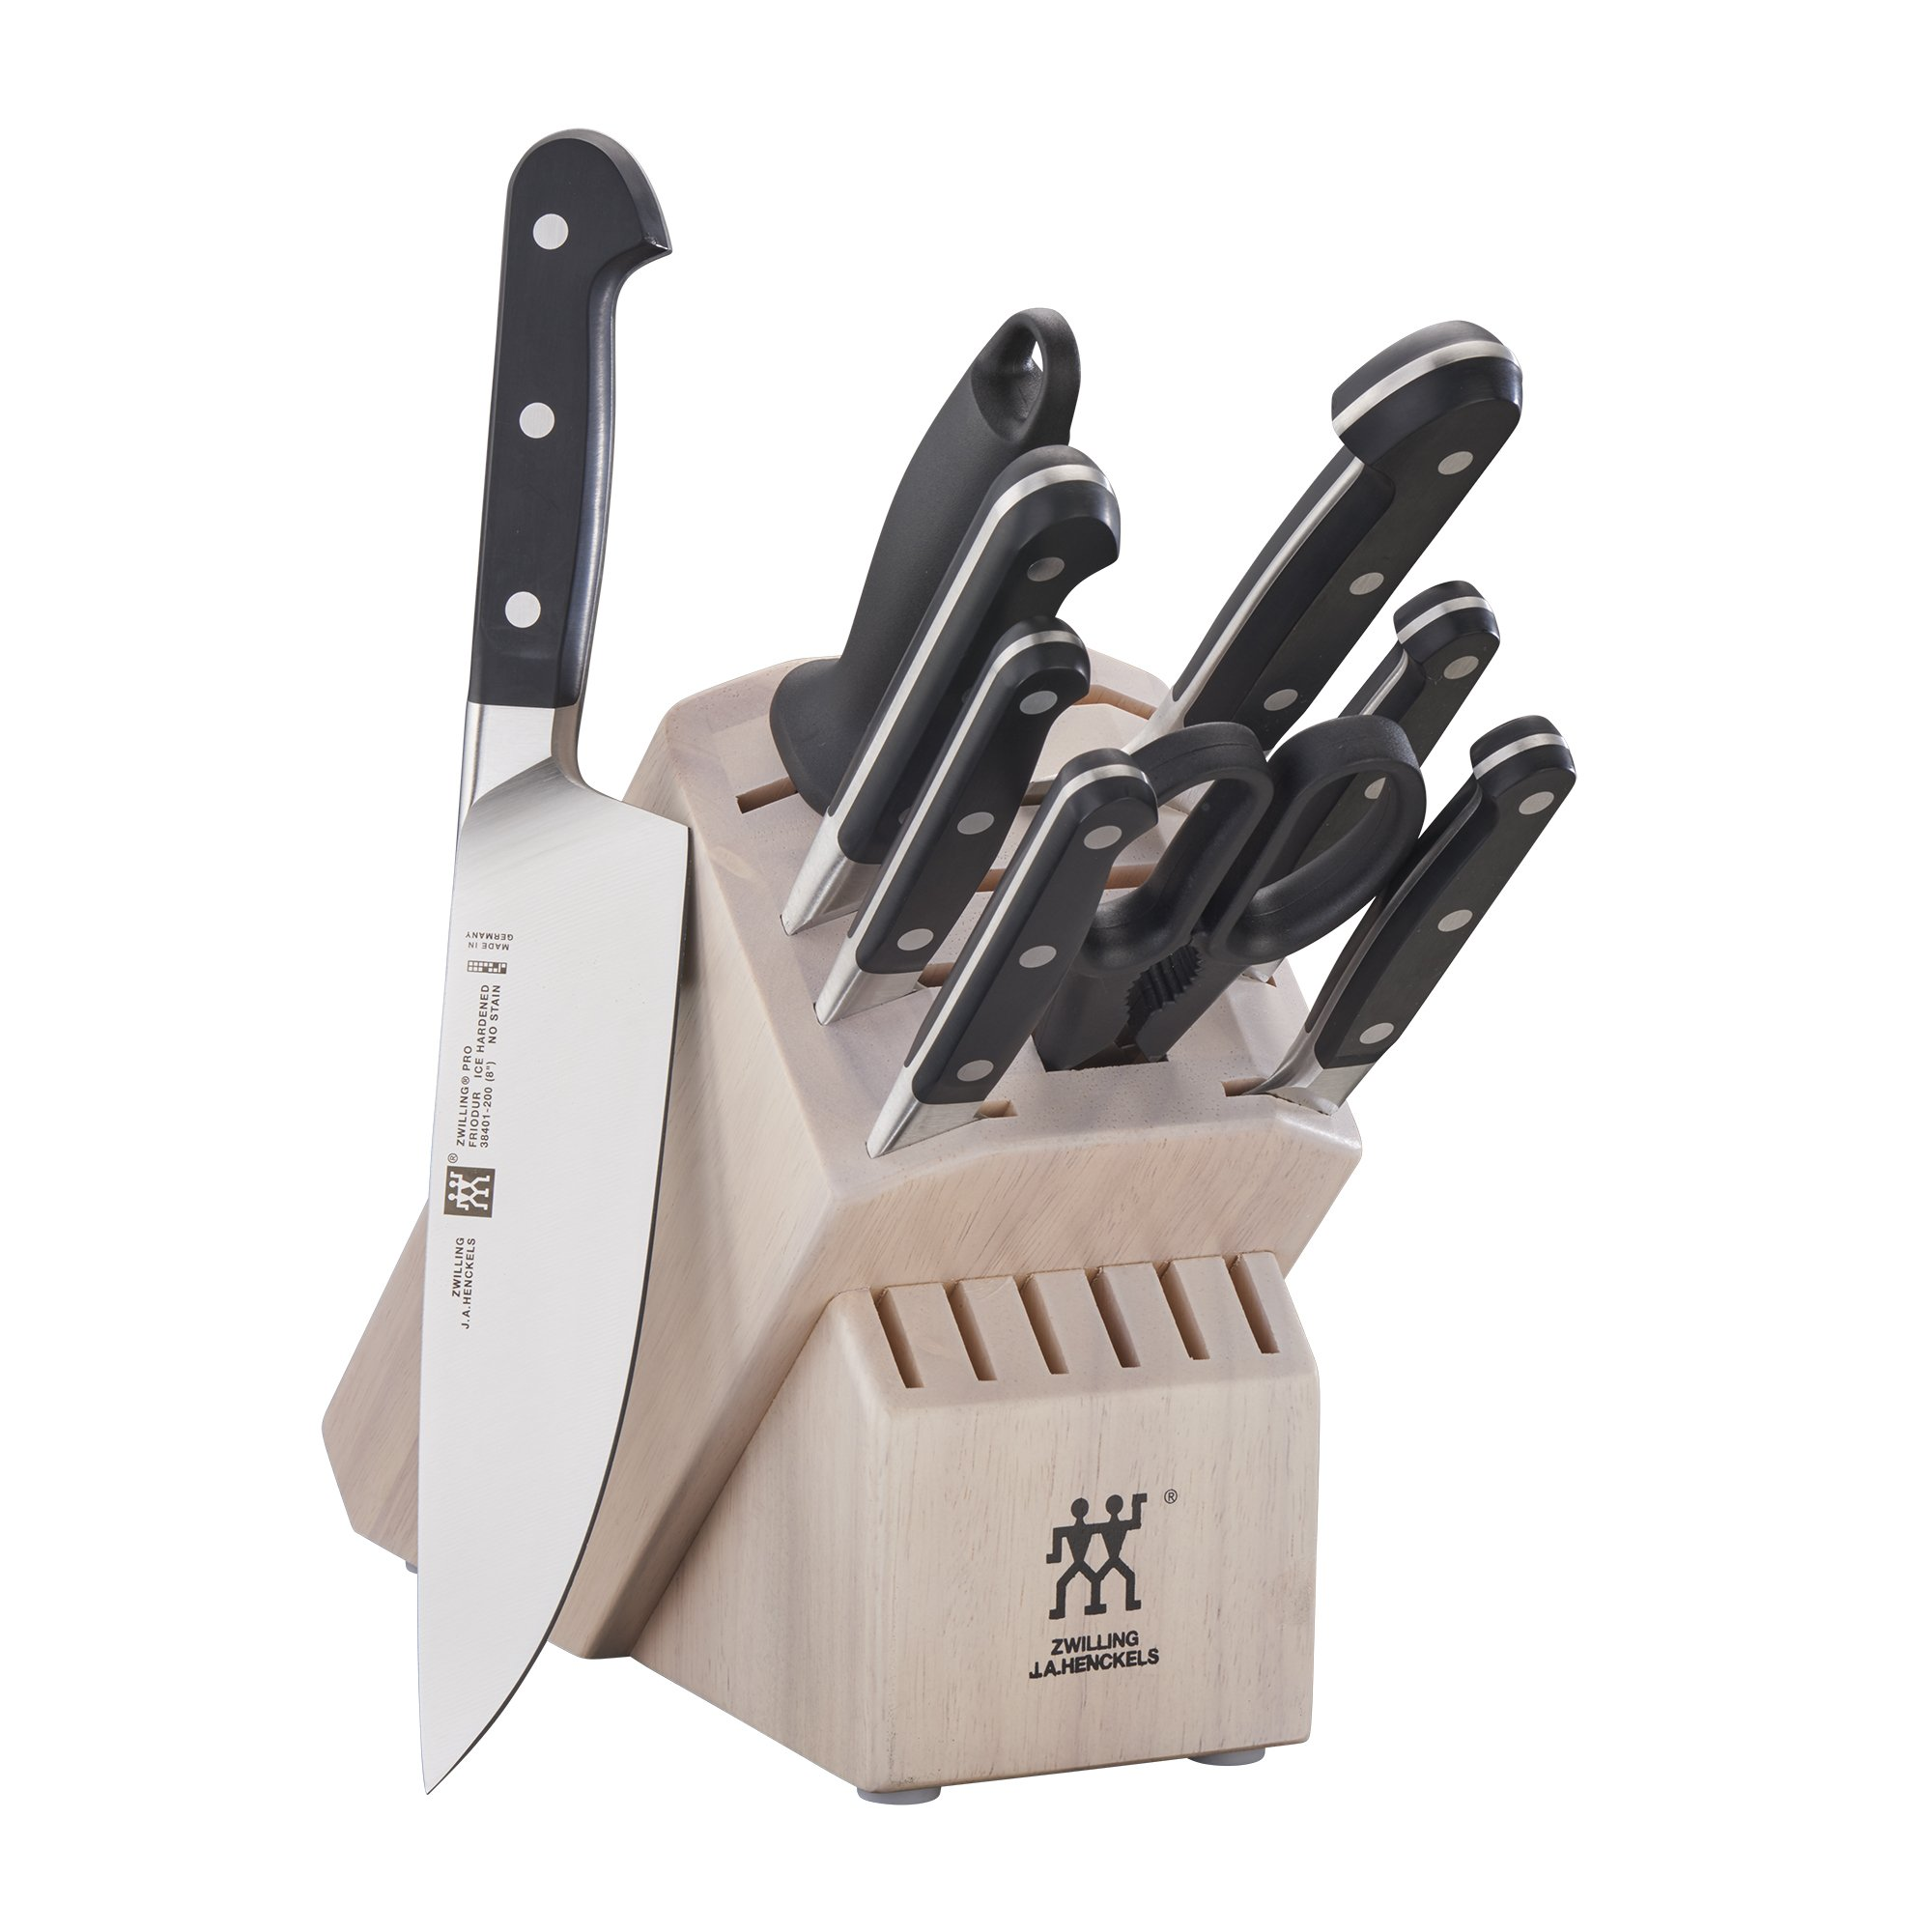 ZWILLING Pro 10-pc Knife Block Set - White by ZWILLING J.A. Henckels (Image #1)